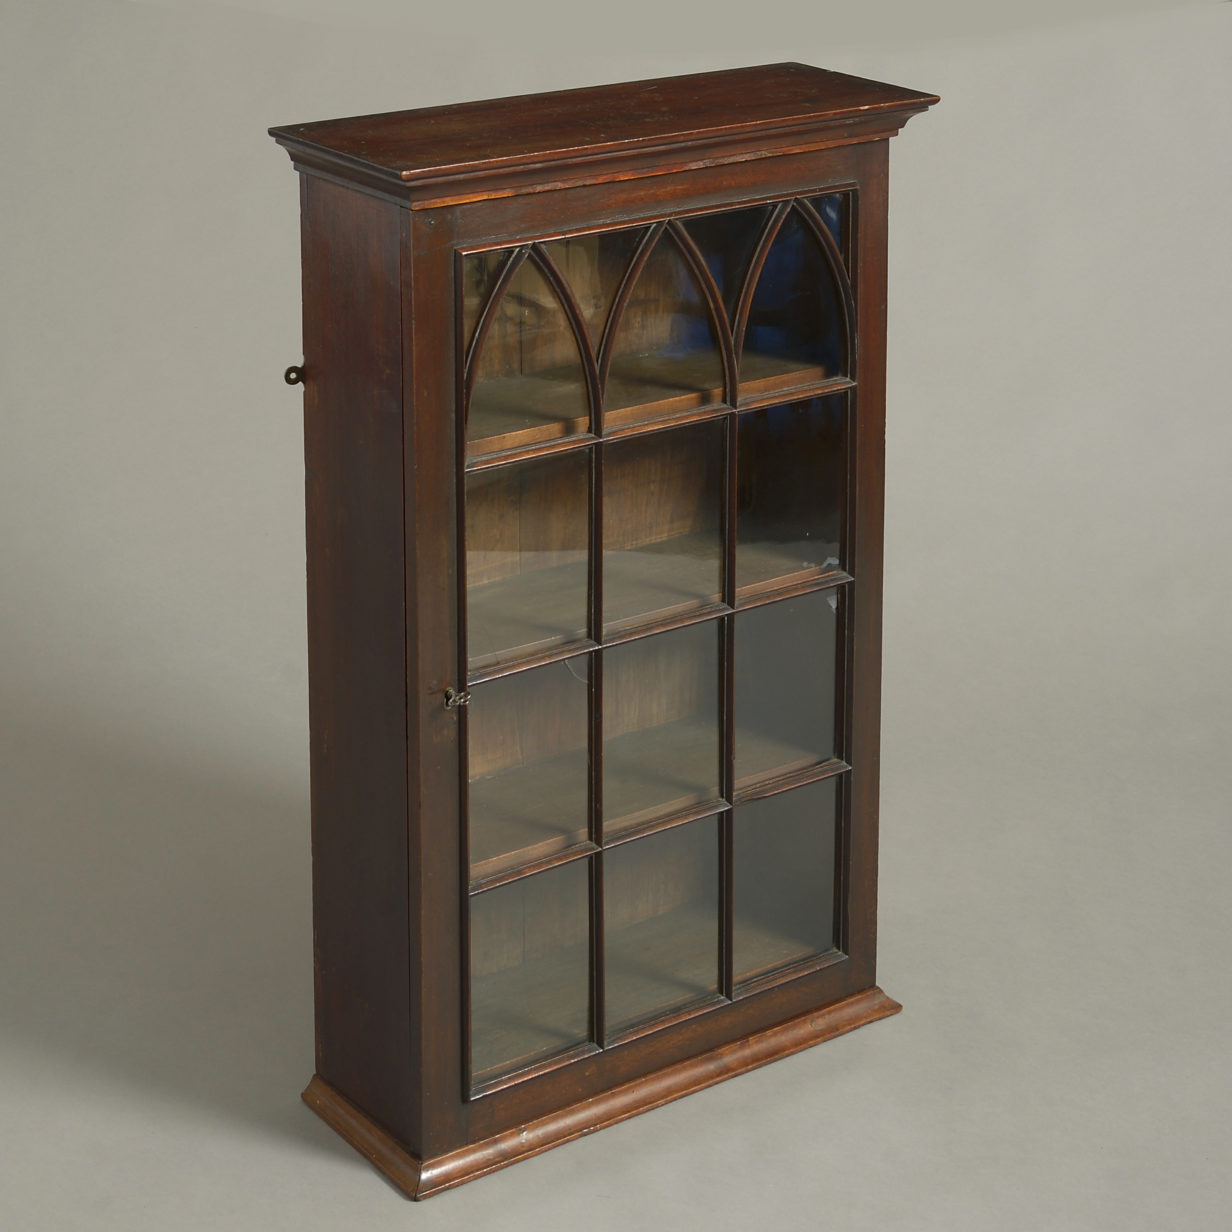 Gothick Hanging Cupboard